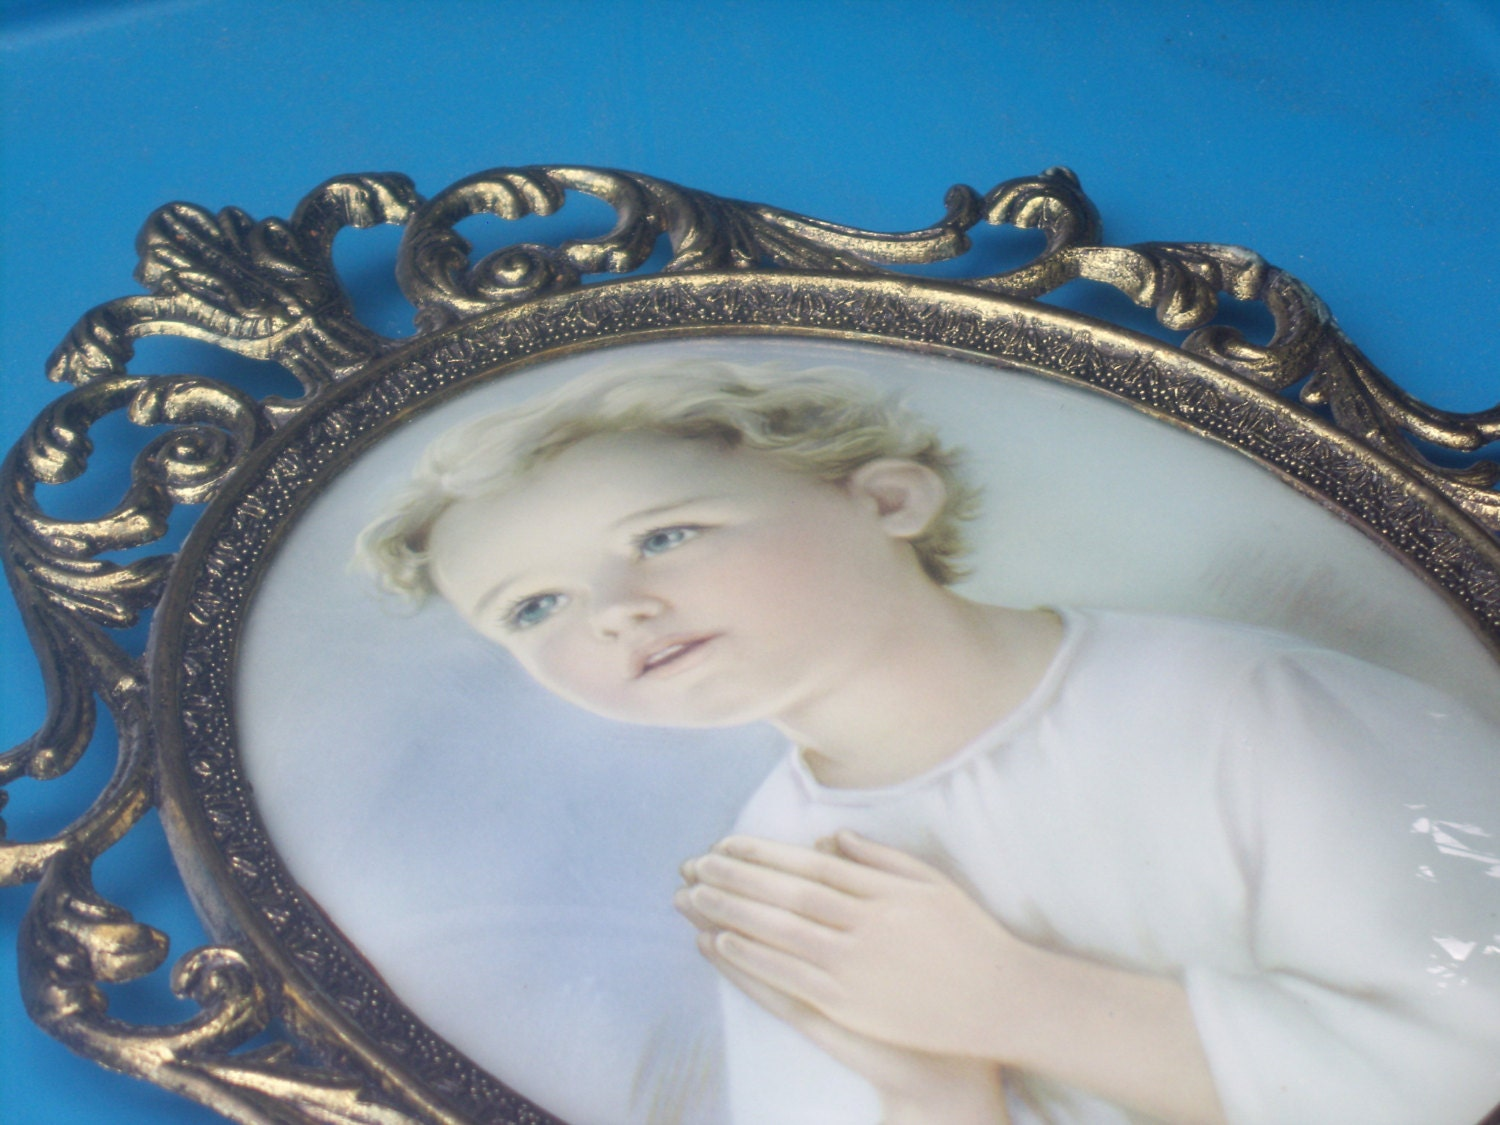 Vintage convex bubble glass ornate italian frame with praying girl vintage convex bubble glass ornate italian frame with praying girl jeuxipadfo Image collections